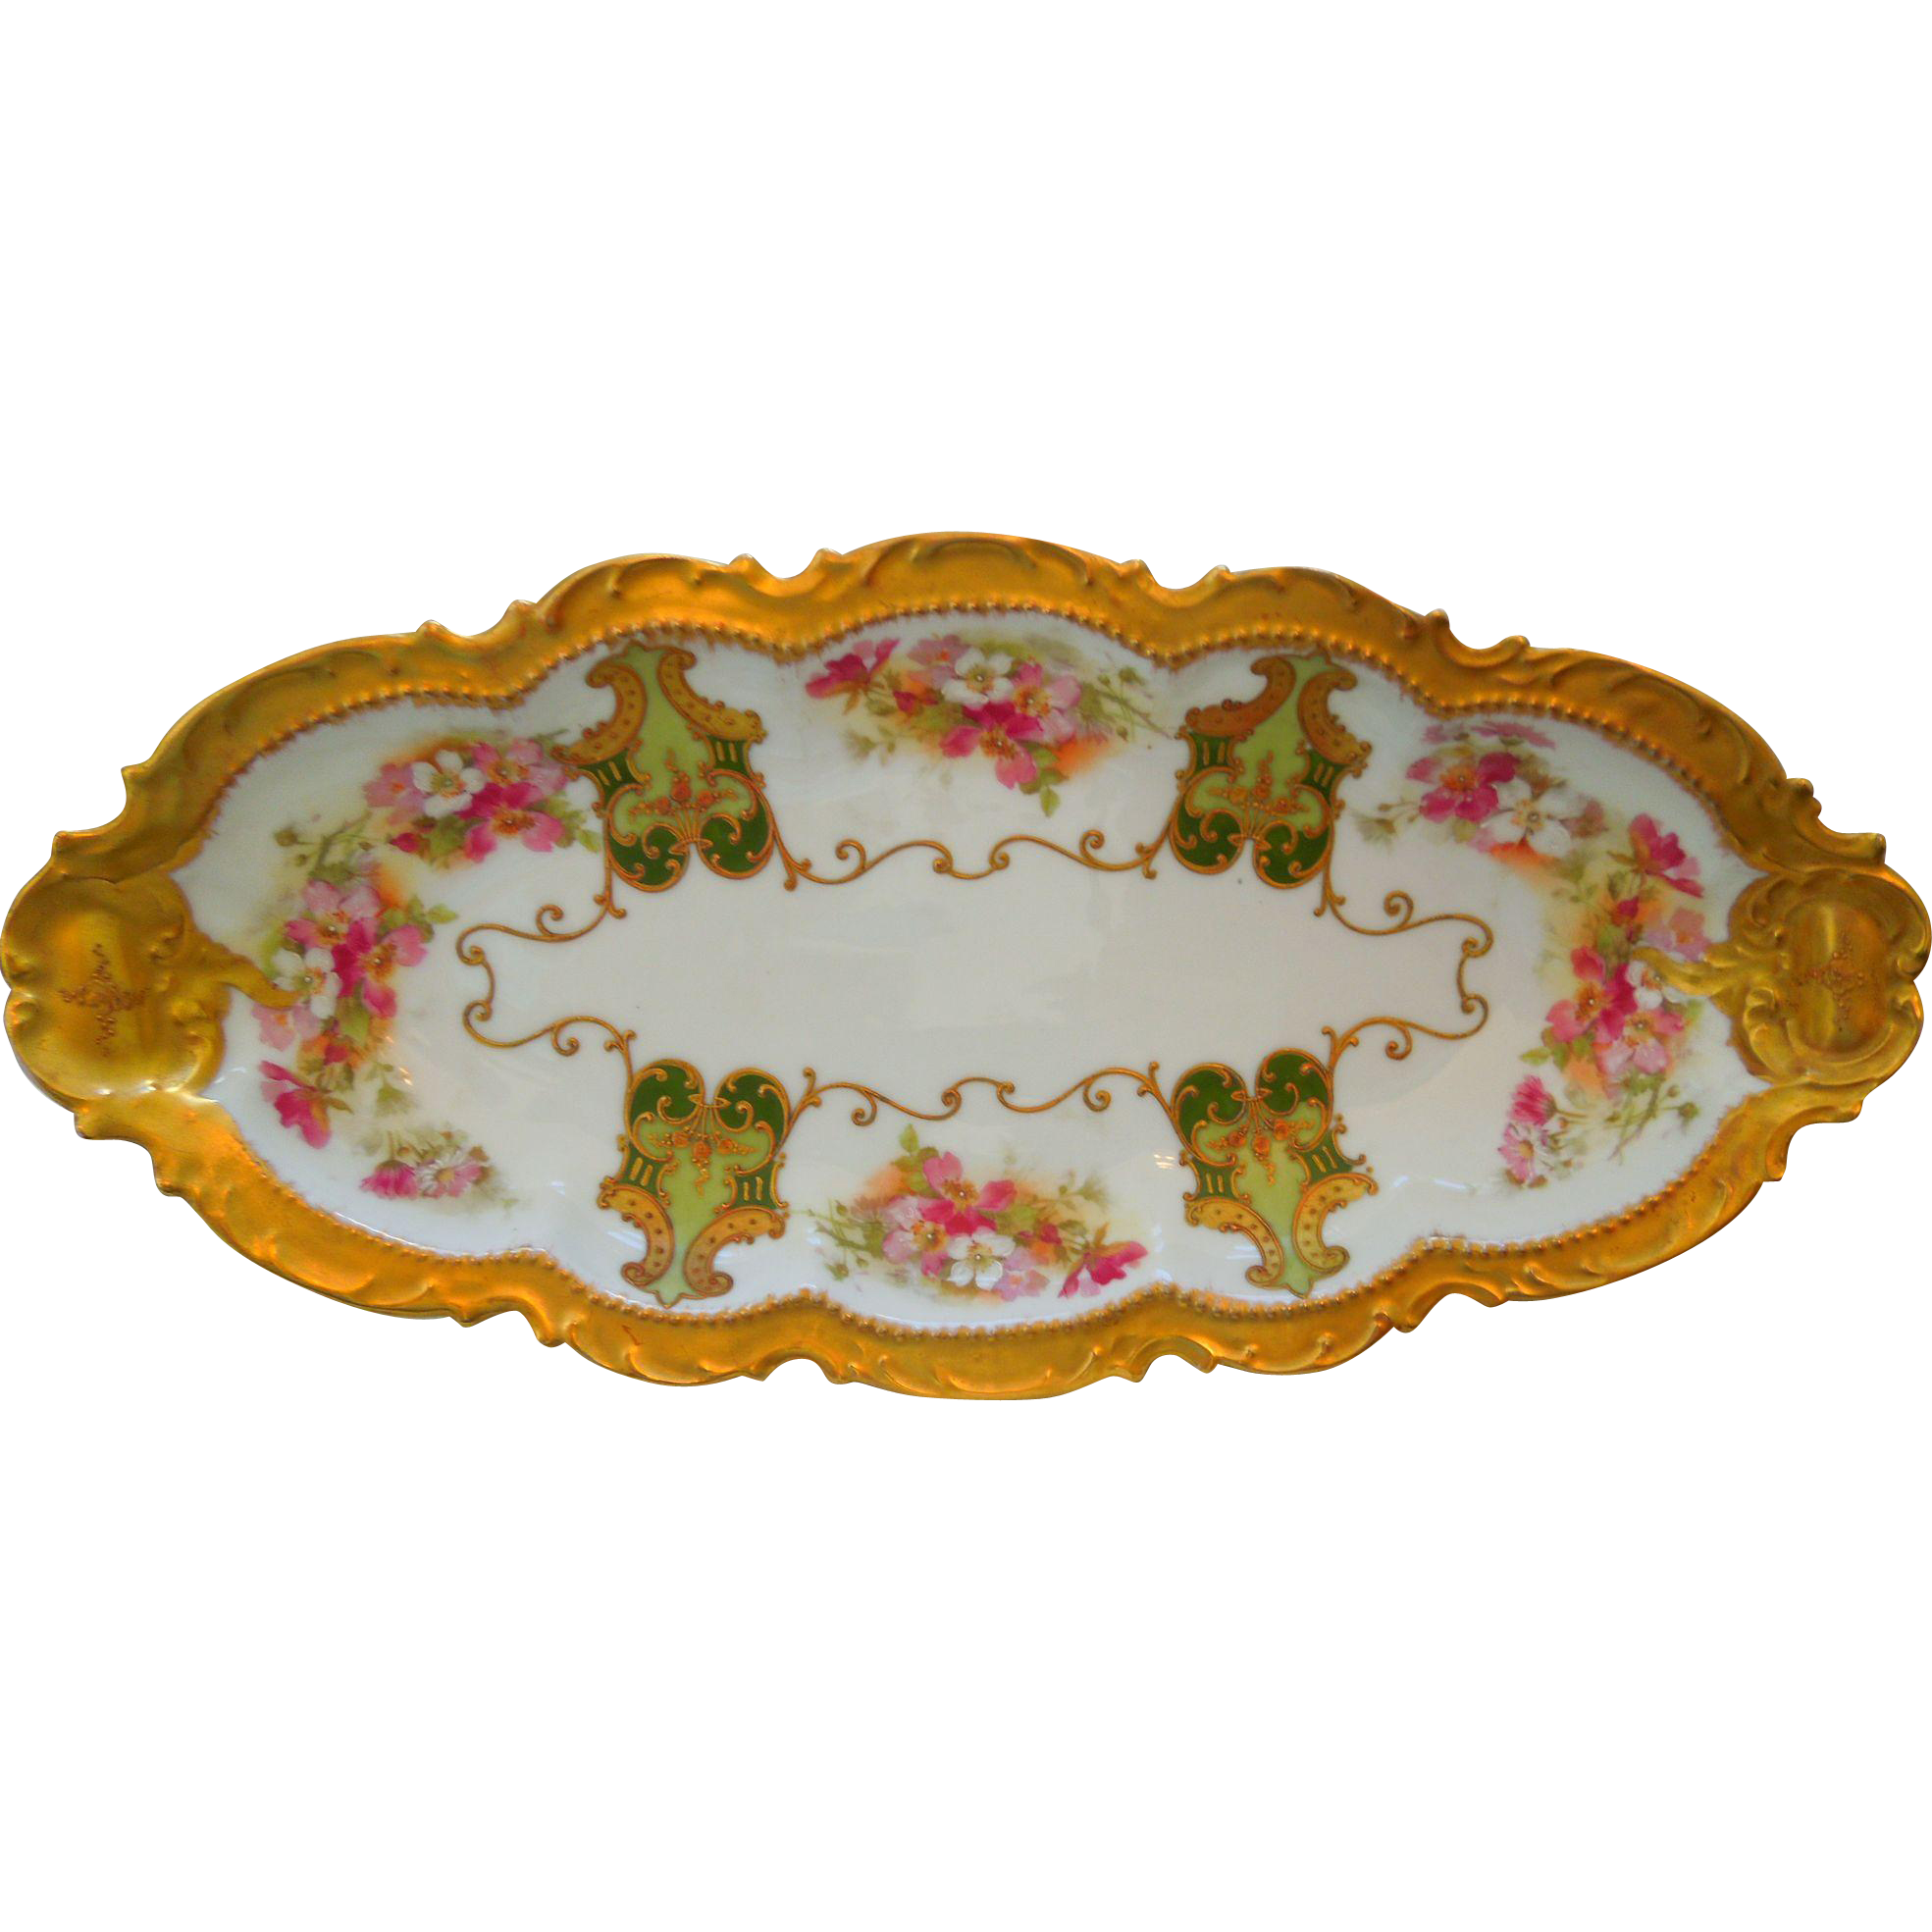 Coronet Limoges Porcelain Floral Tray Gold Gilt Early